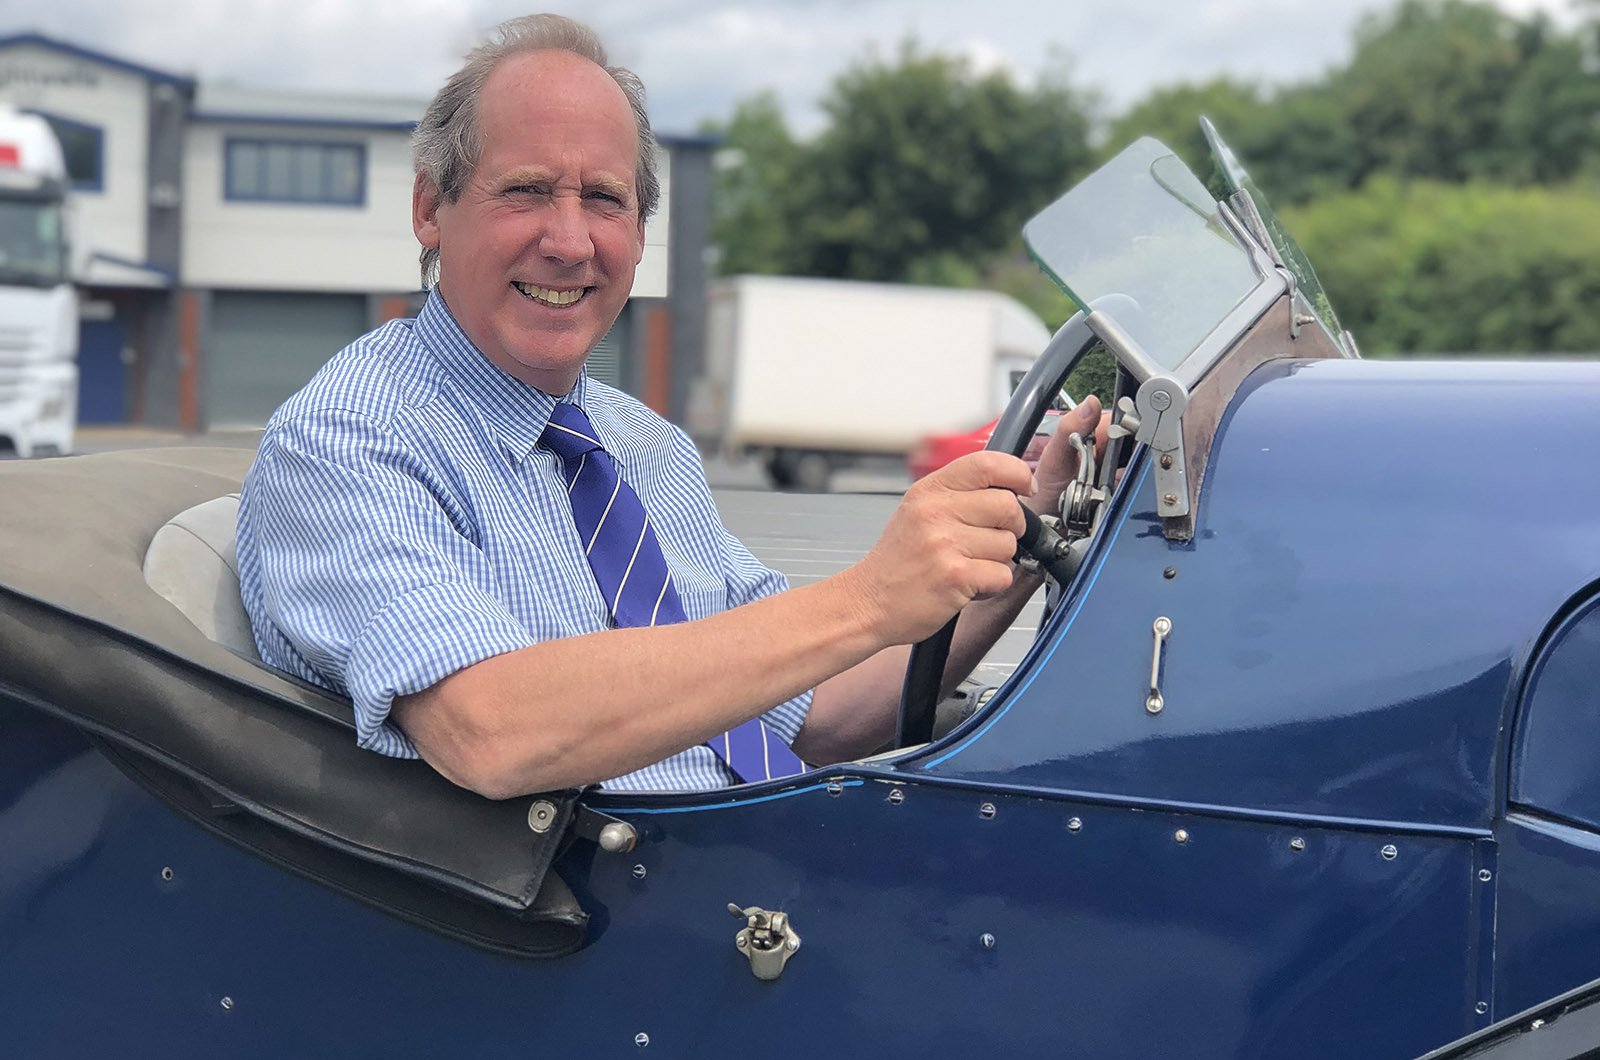 Man in blue shirt and tie sat in open top classic car